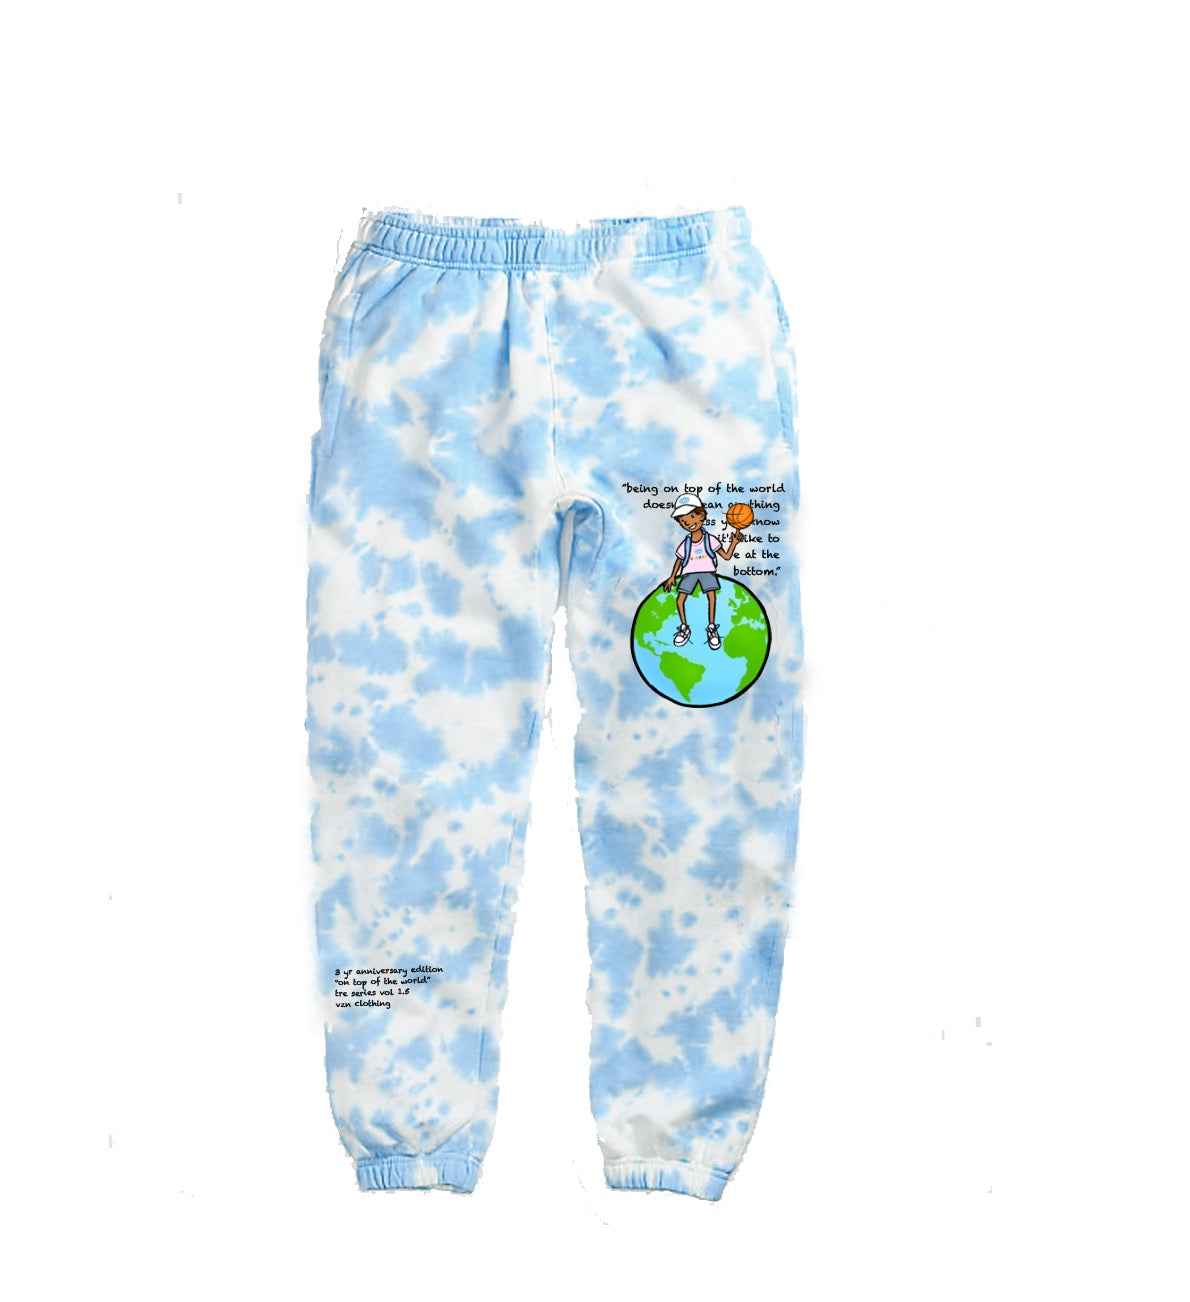 Tre Series 1.5: Blue Tie Dye Sweatpants